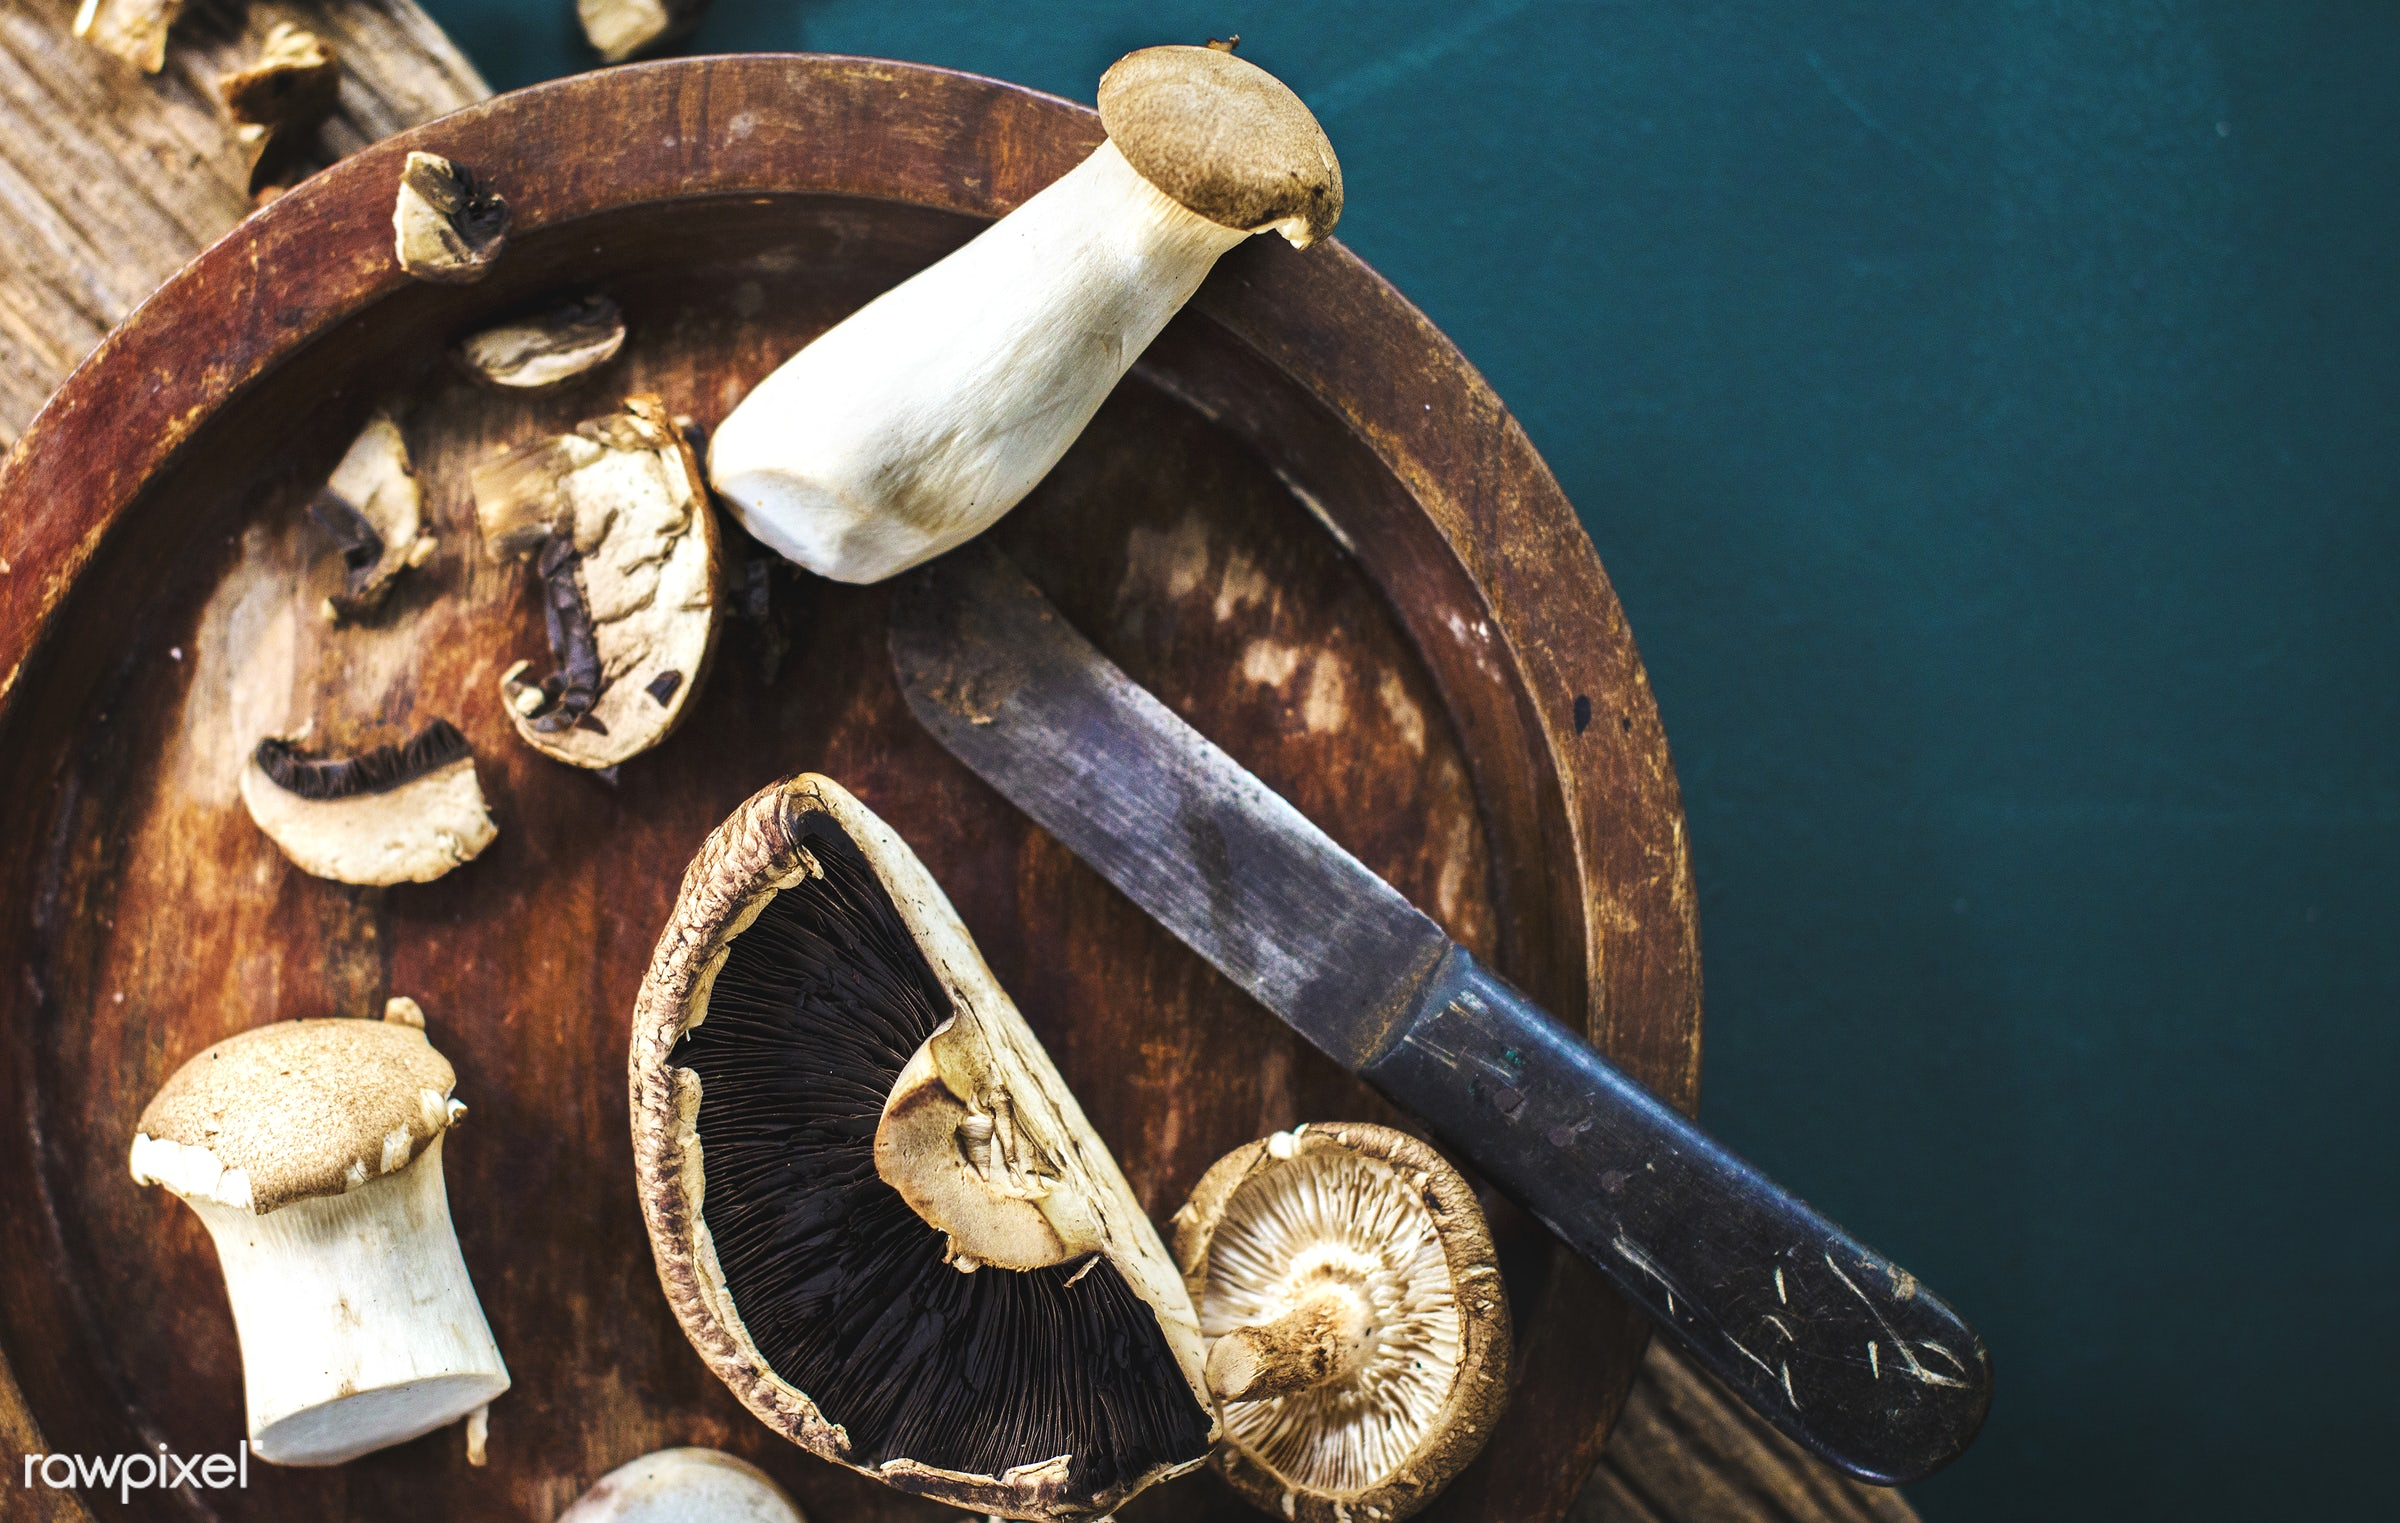 mushroom, plant, raw, nobody, ingredients, farm, real, nature, fresh, products, closeup, knife, eryngii, agriculture,...